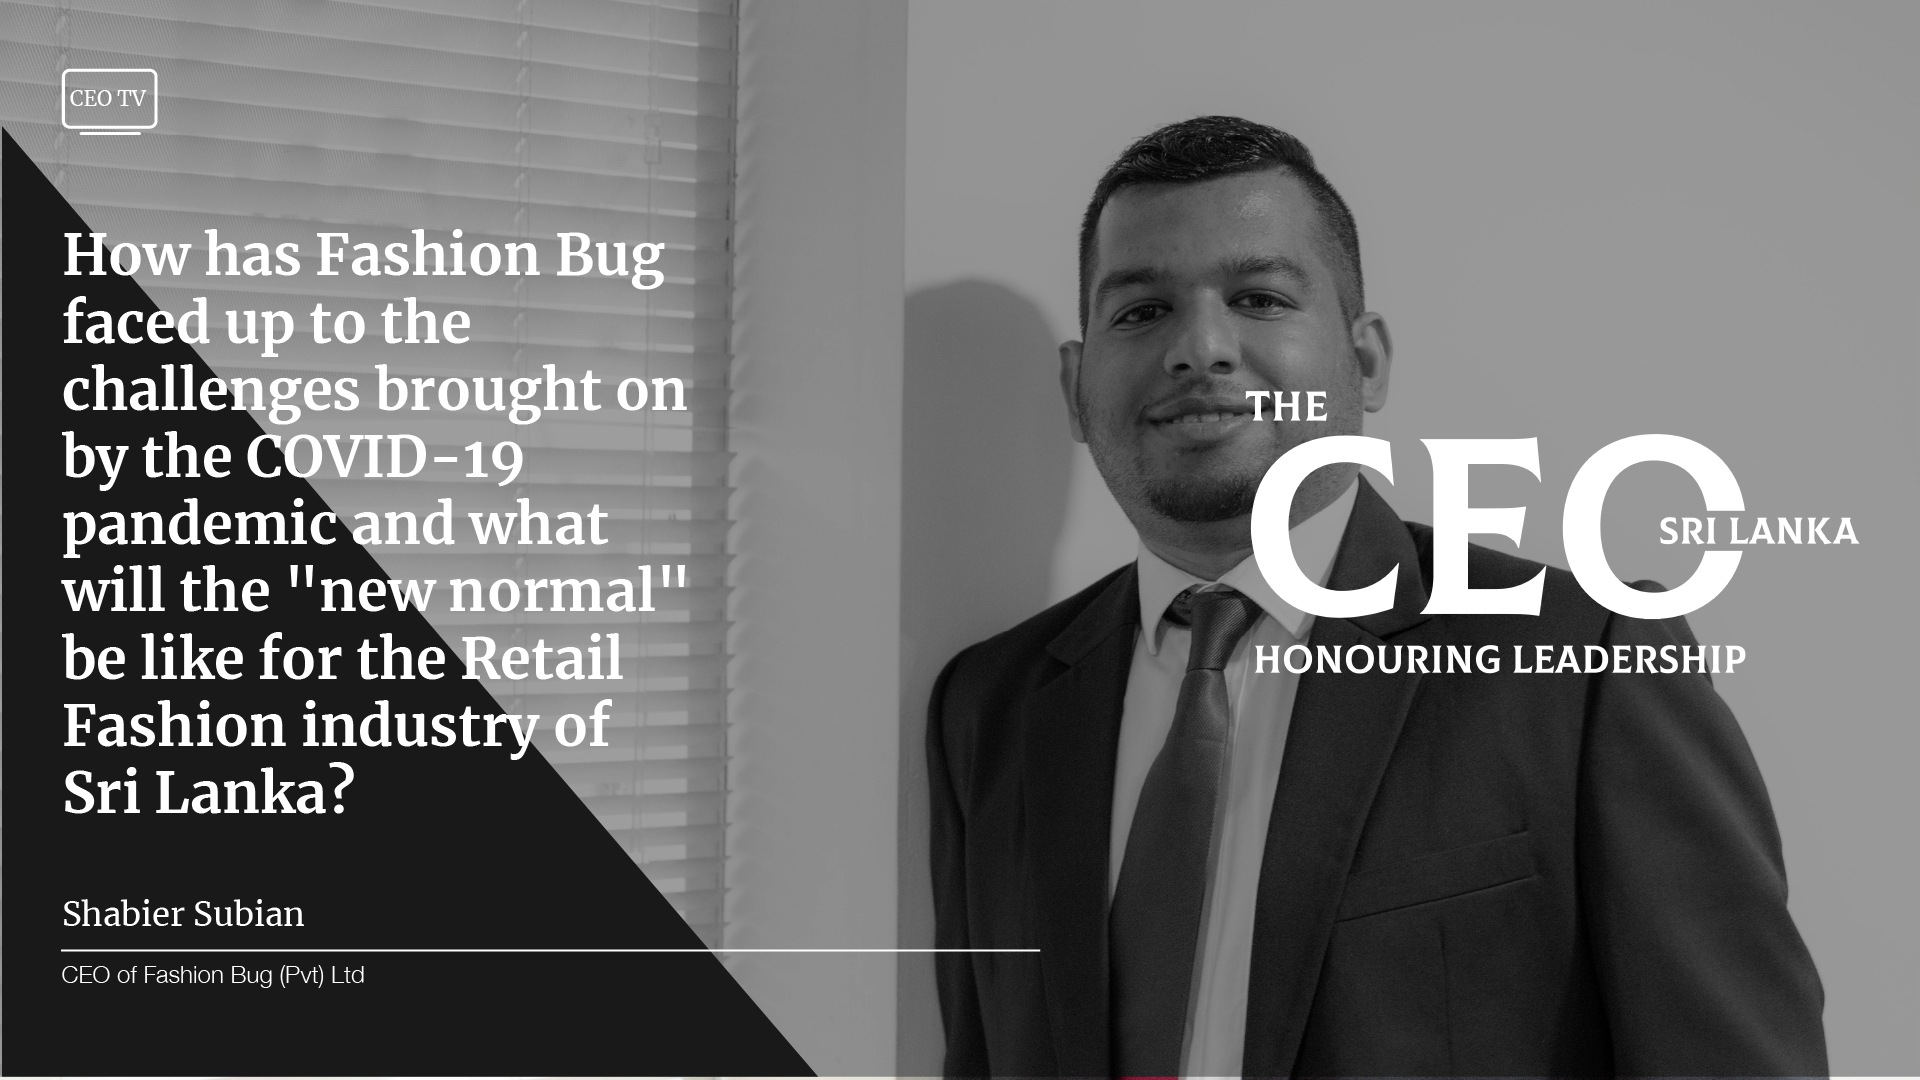 An Interview with Shabier Subian, CEO of Fashion Bug